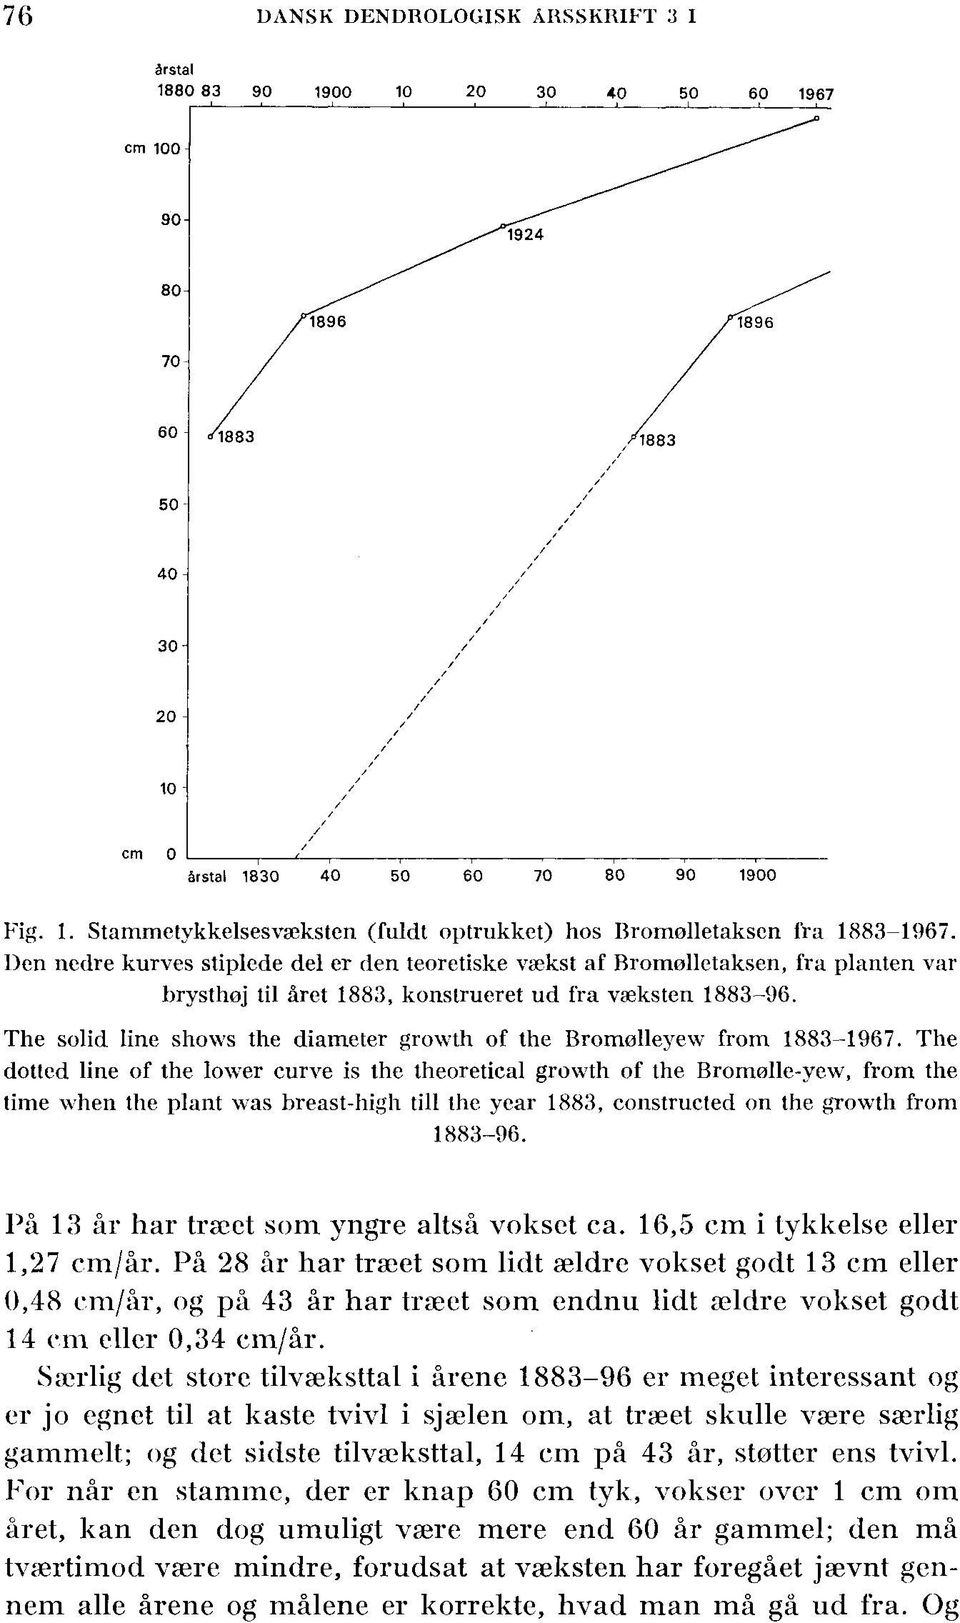 The solid line shows the diameter growth of the Bromølleyew from 1883-1967.